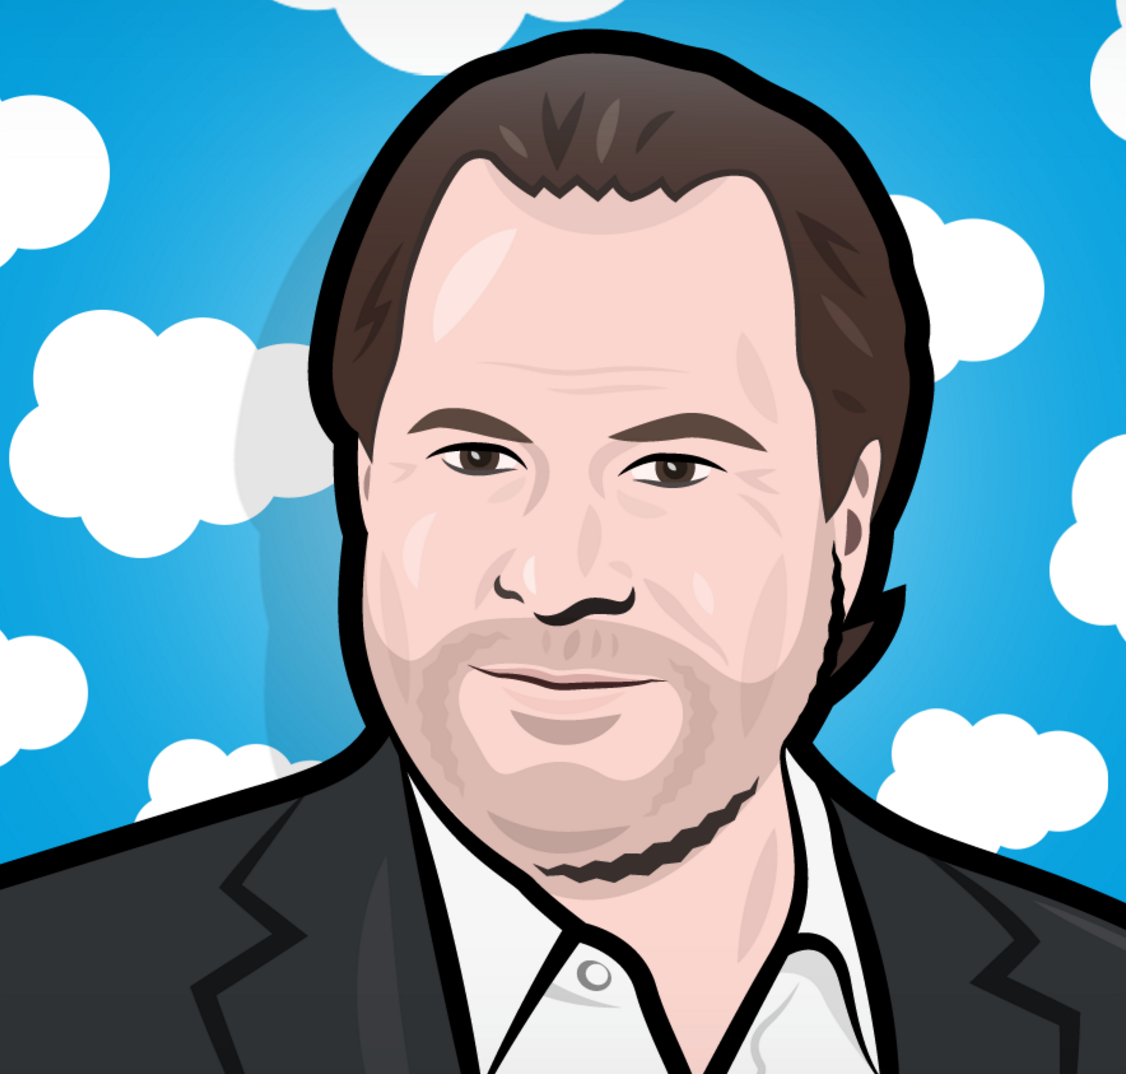 How to attend Dreamforce like Benioff